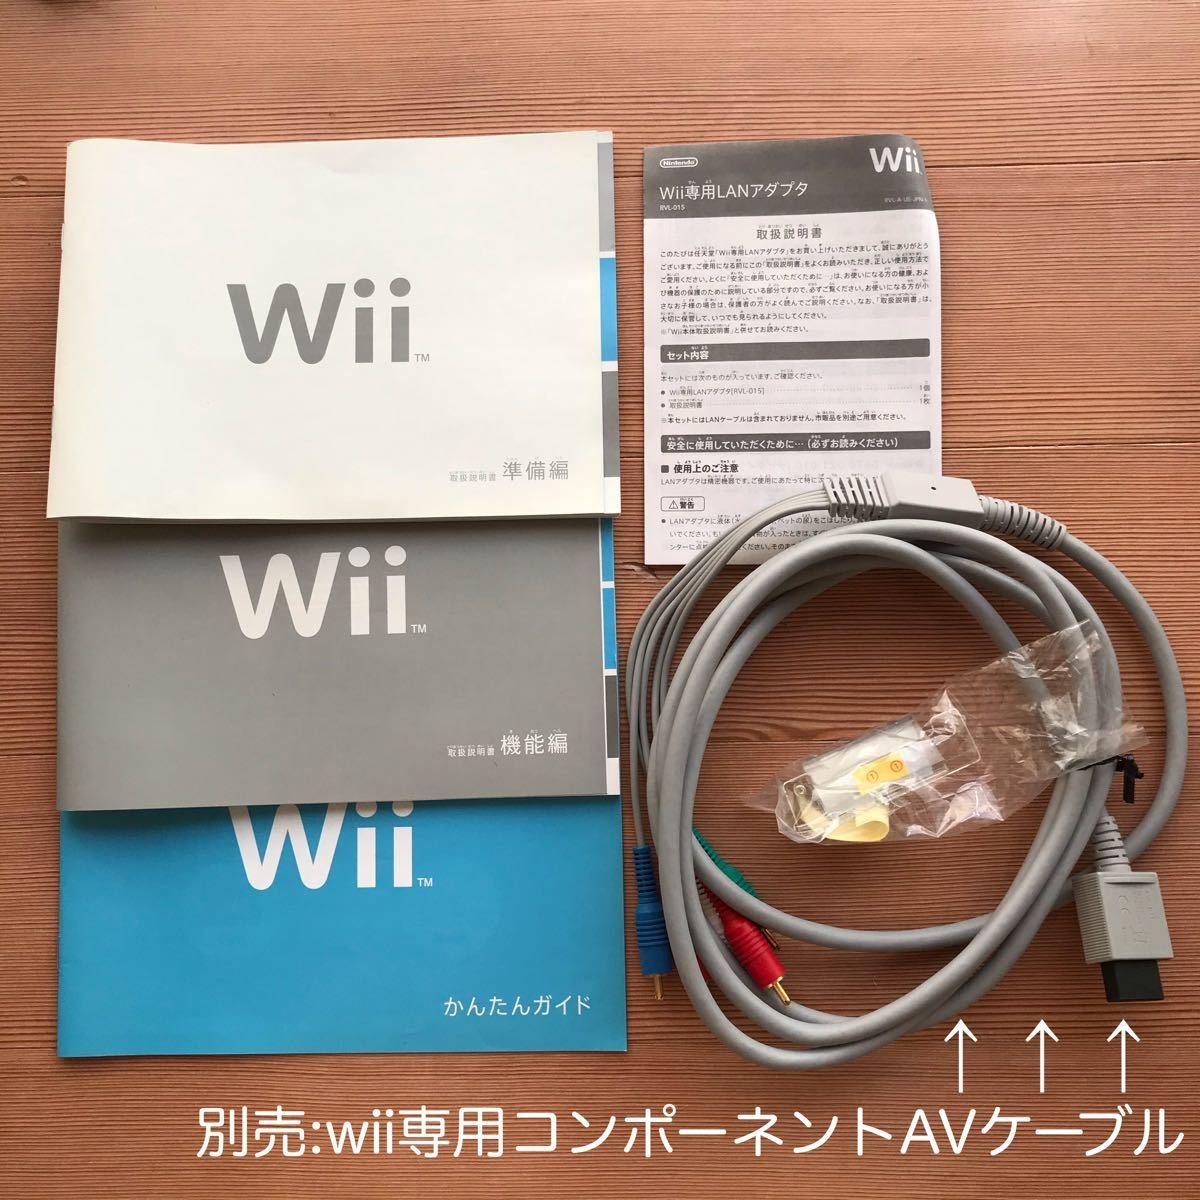 Wii本体、バランスボード、wiiリモコン、ソフト4本